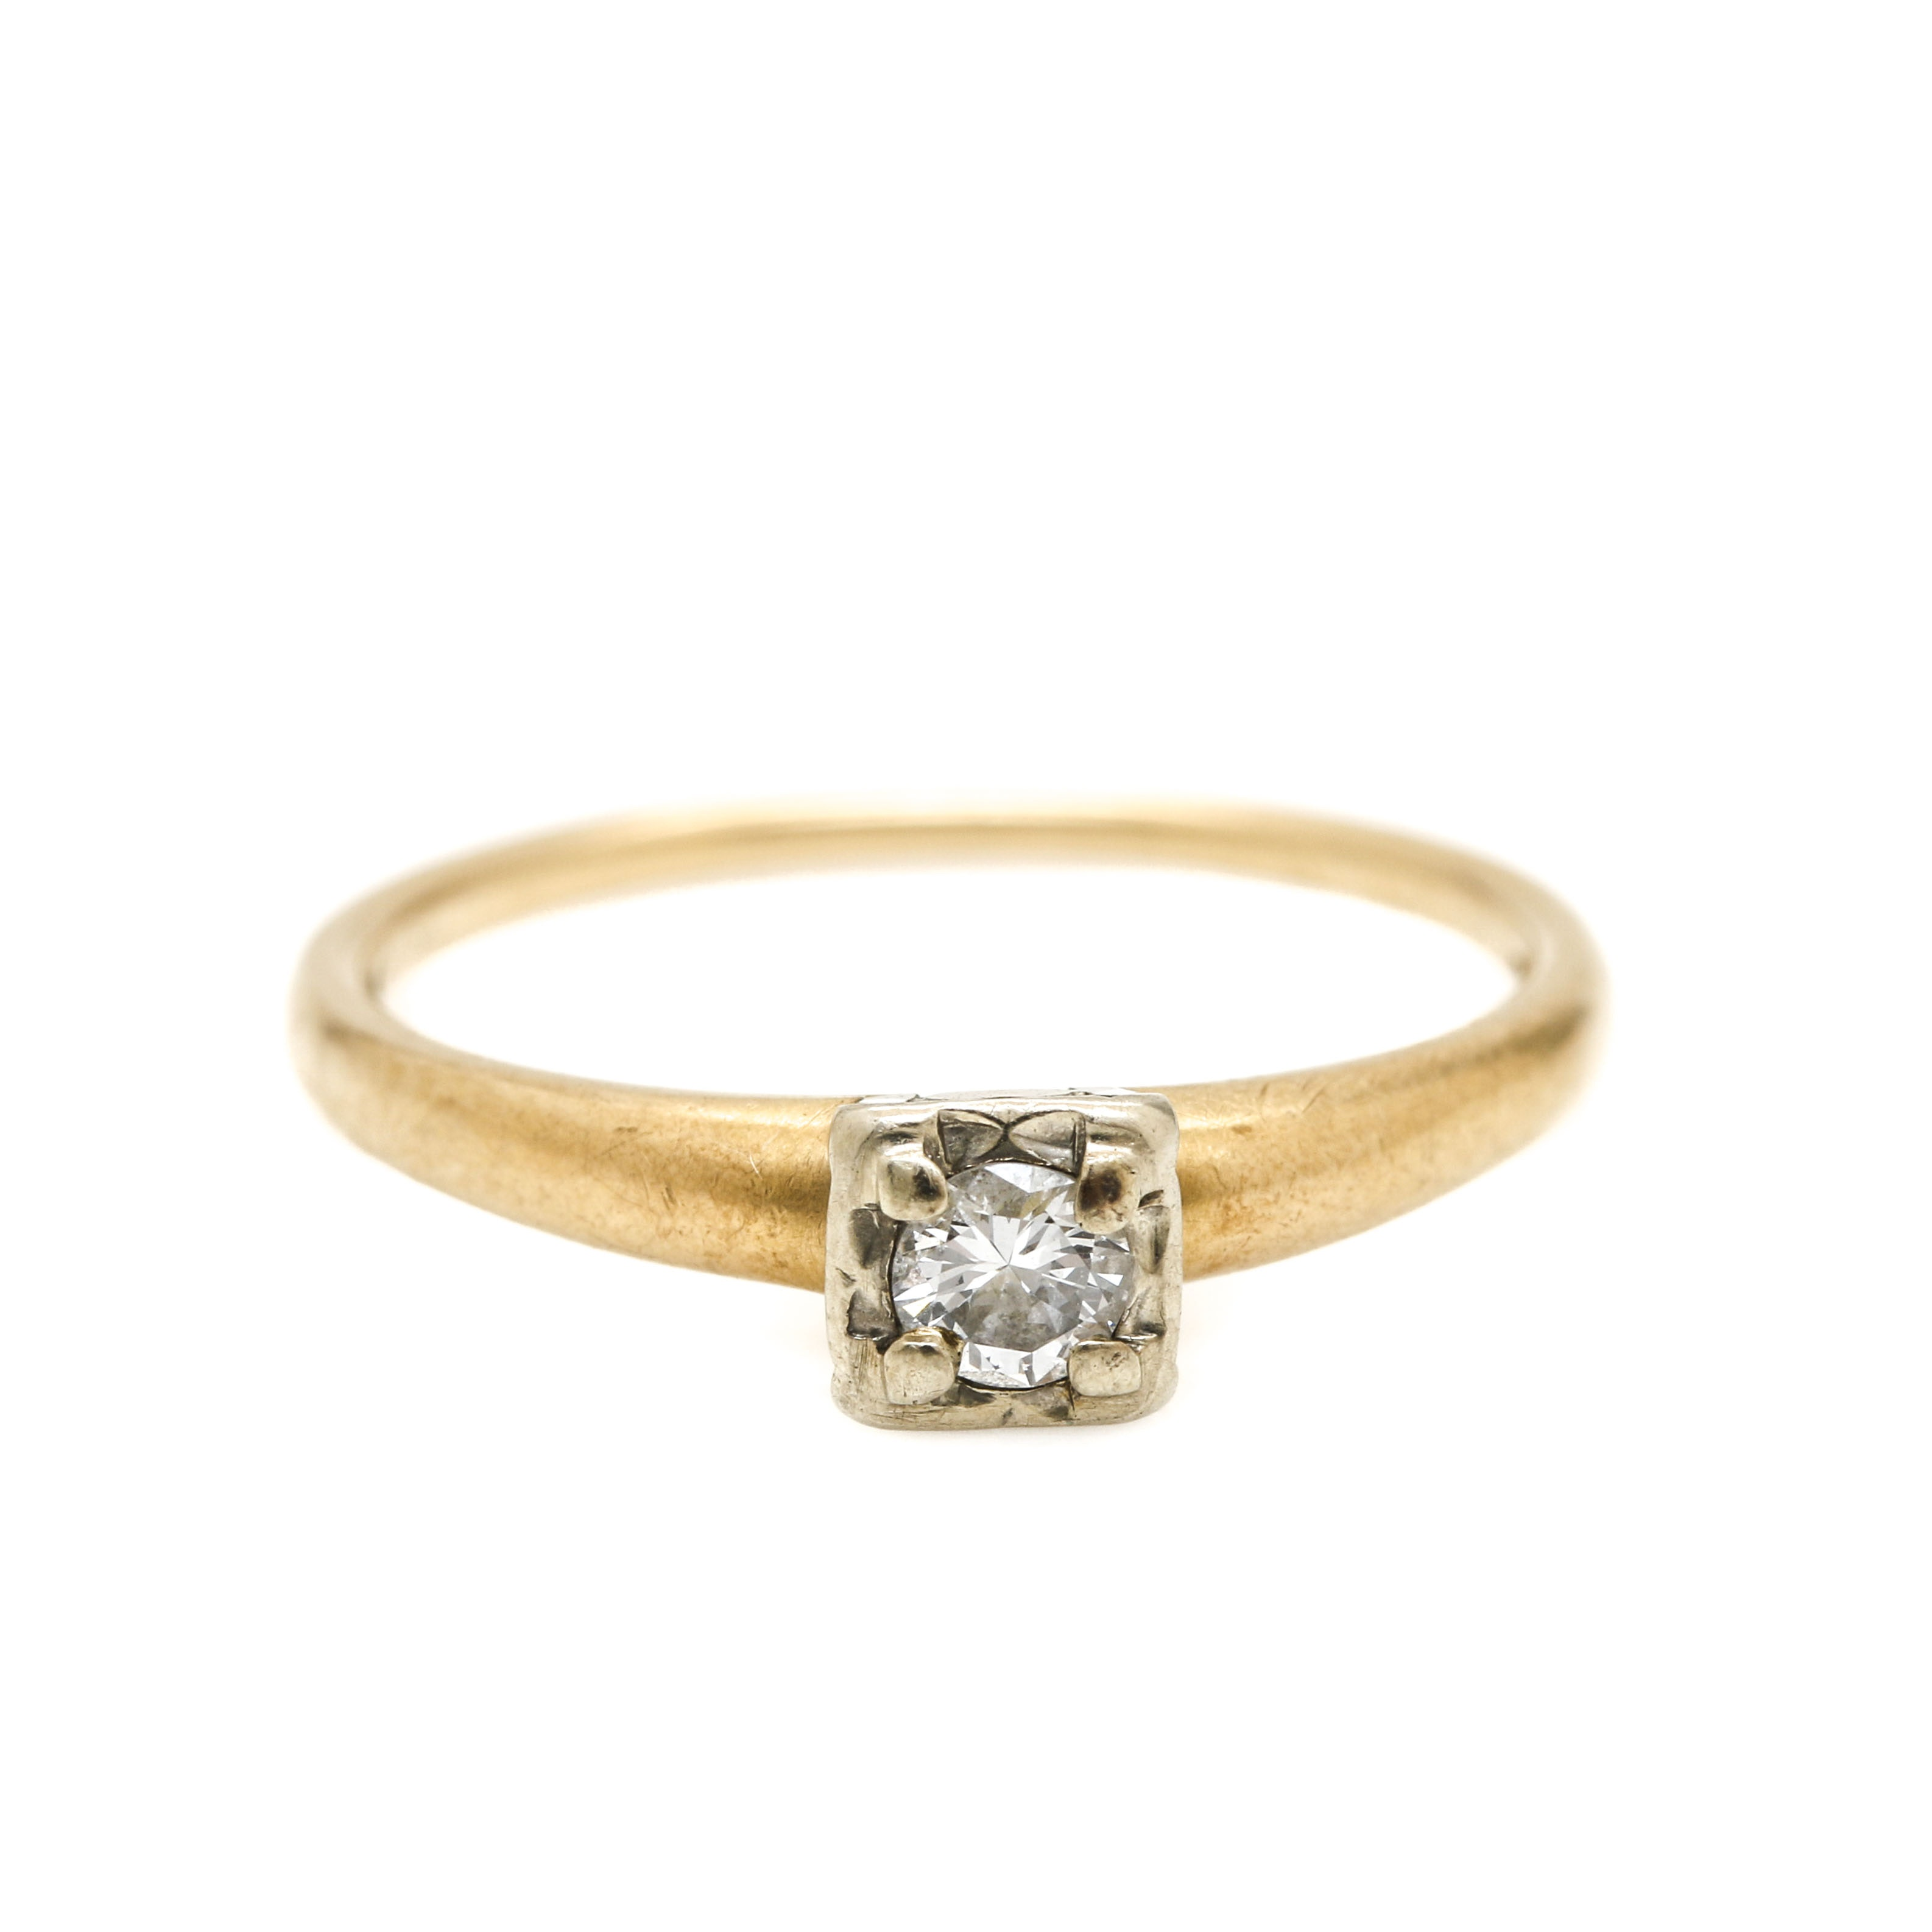 18K White Gold and 14K Yellow Gold Diamond Solitaire Ring